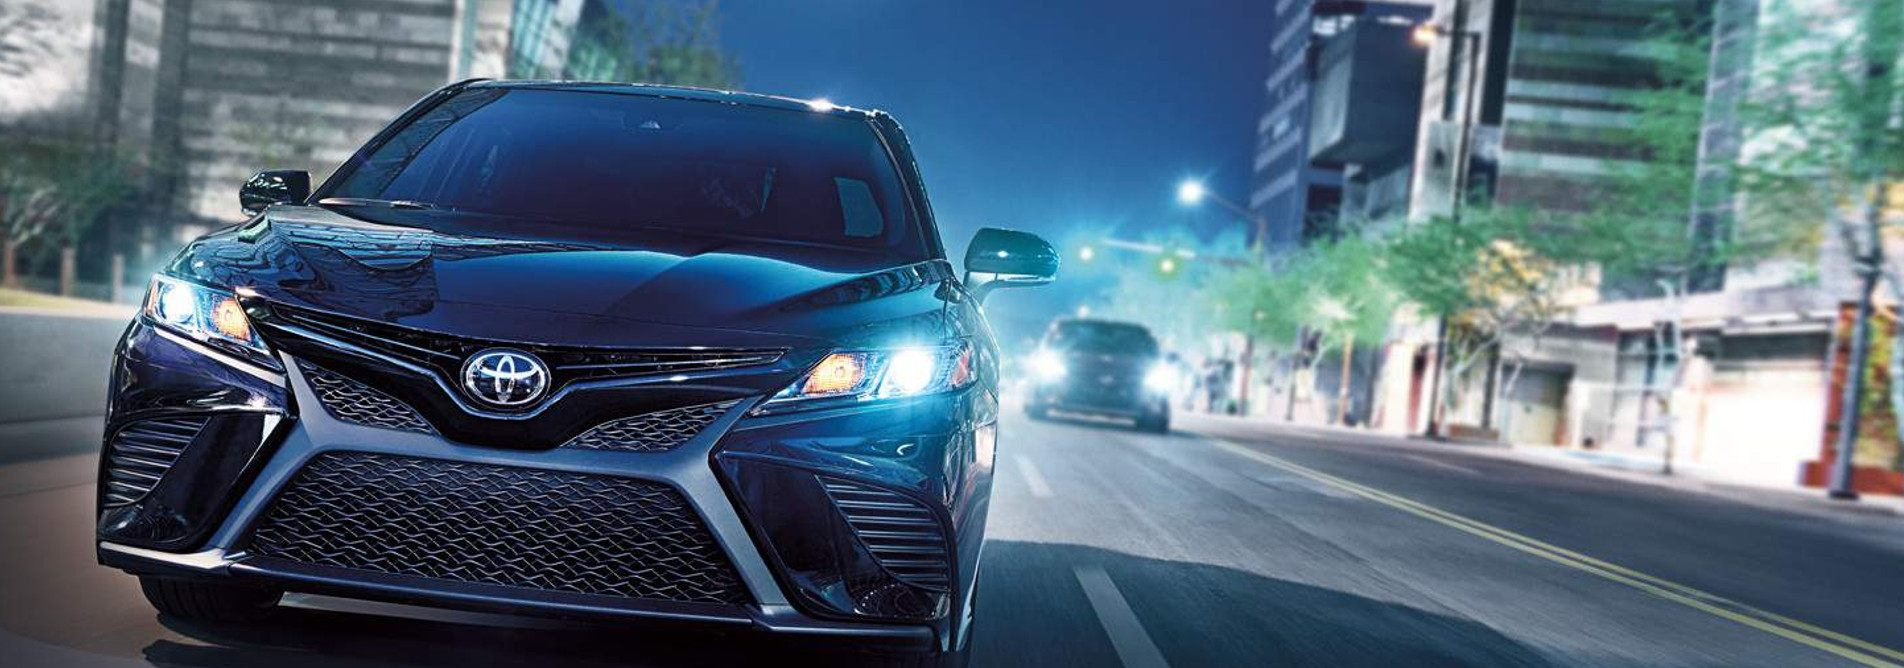 2018 Toyota Camry Exterior at Ken Shaw Toyota in Toronto